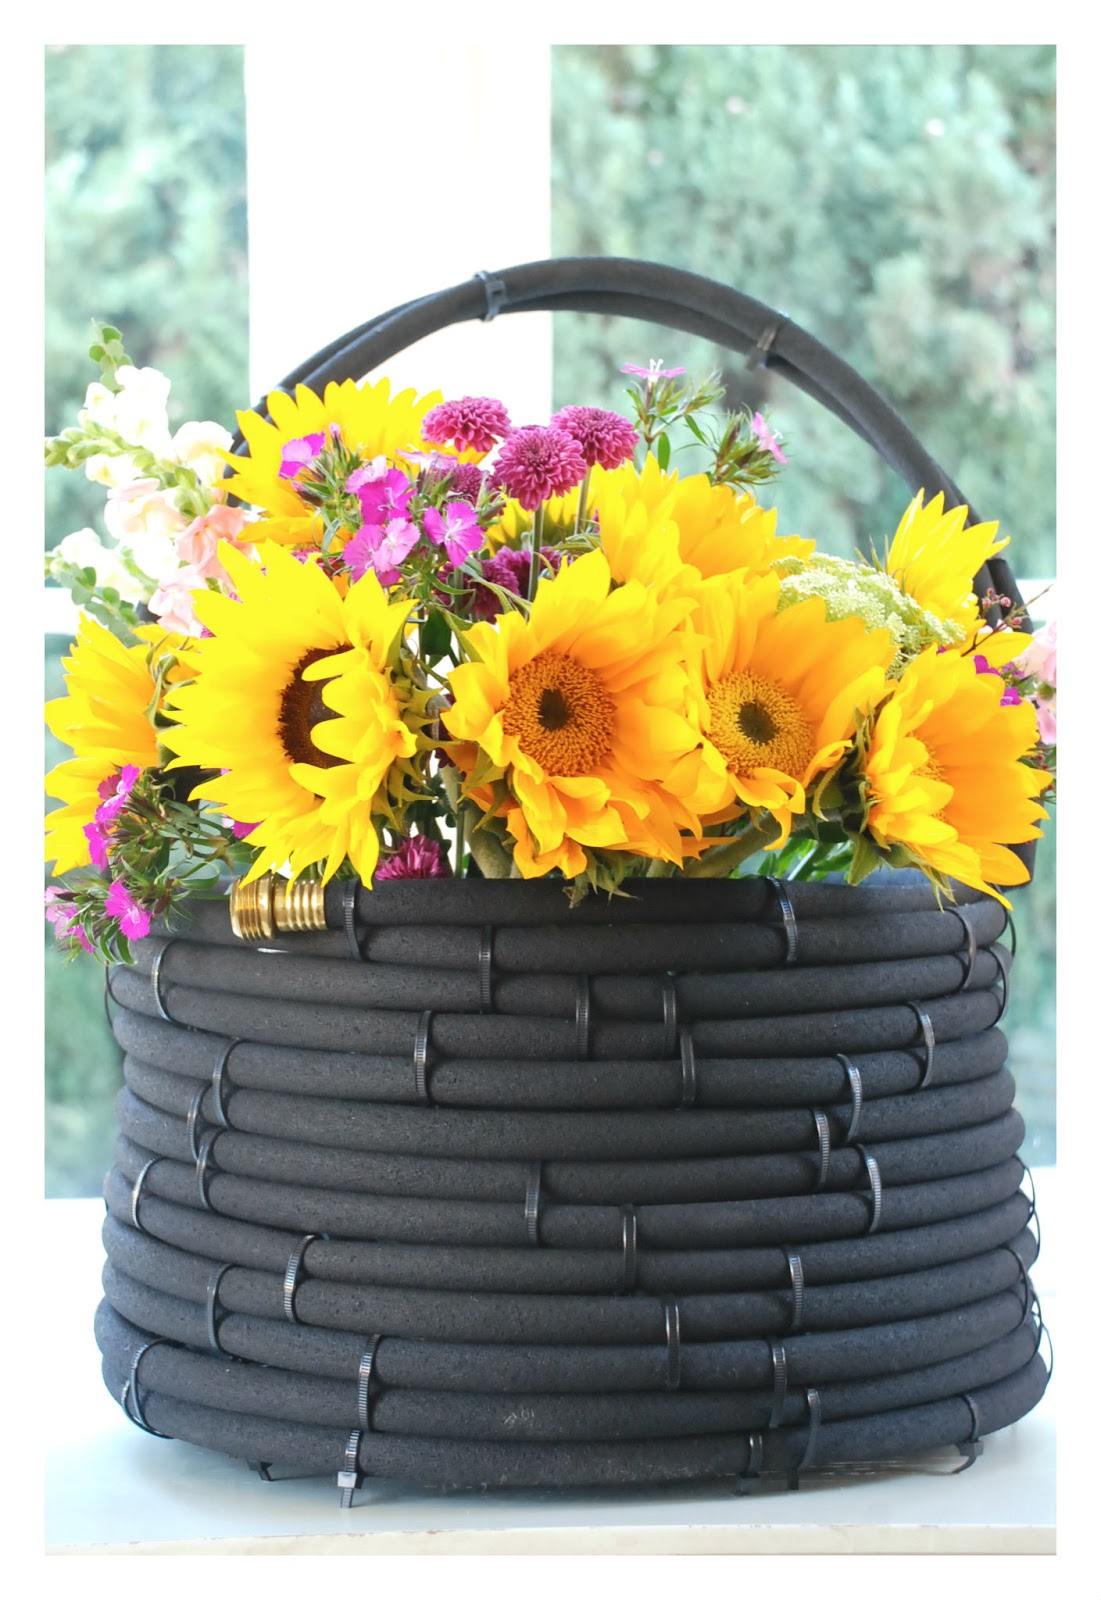 This American Home: Simple Giving: DIY Hose Basket